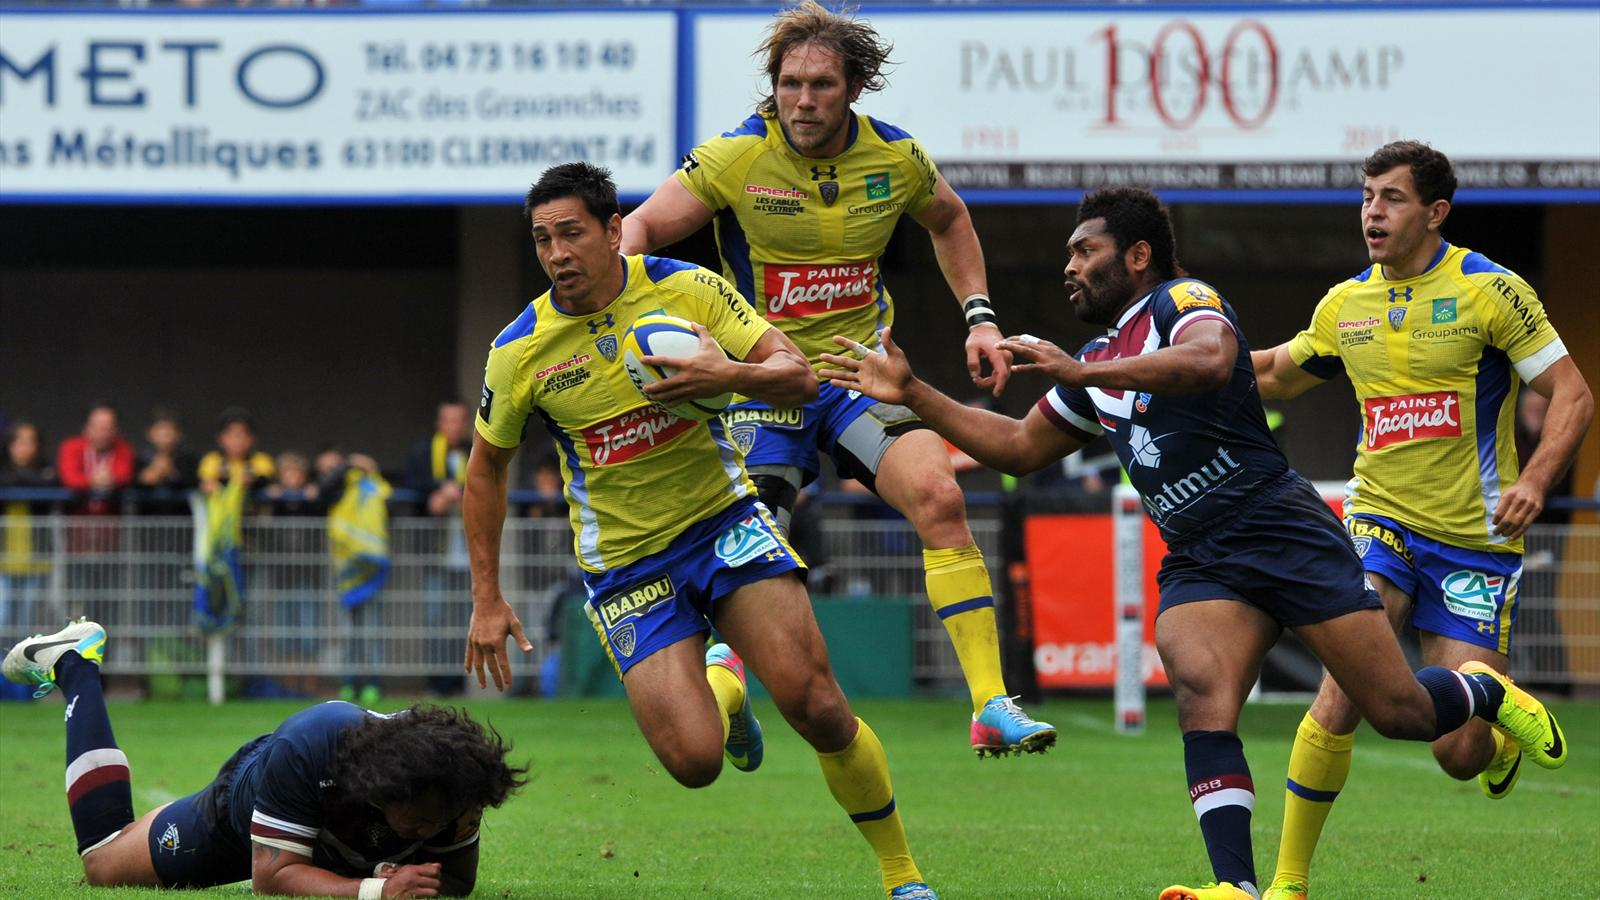 Clermont's New Zealander centre Regan King (front-C) rides the ball with the help of South African flanker Gerhard Vosloo (back-C) during the French Top 14 Rugby Union match between ASM Clermont Auvergne and Union Bordeaux-Begles at the Marcel Michelin St